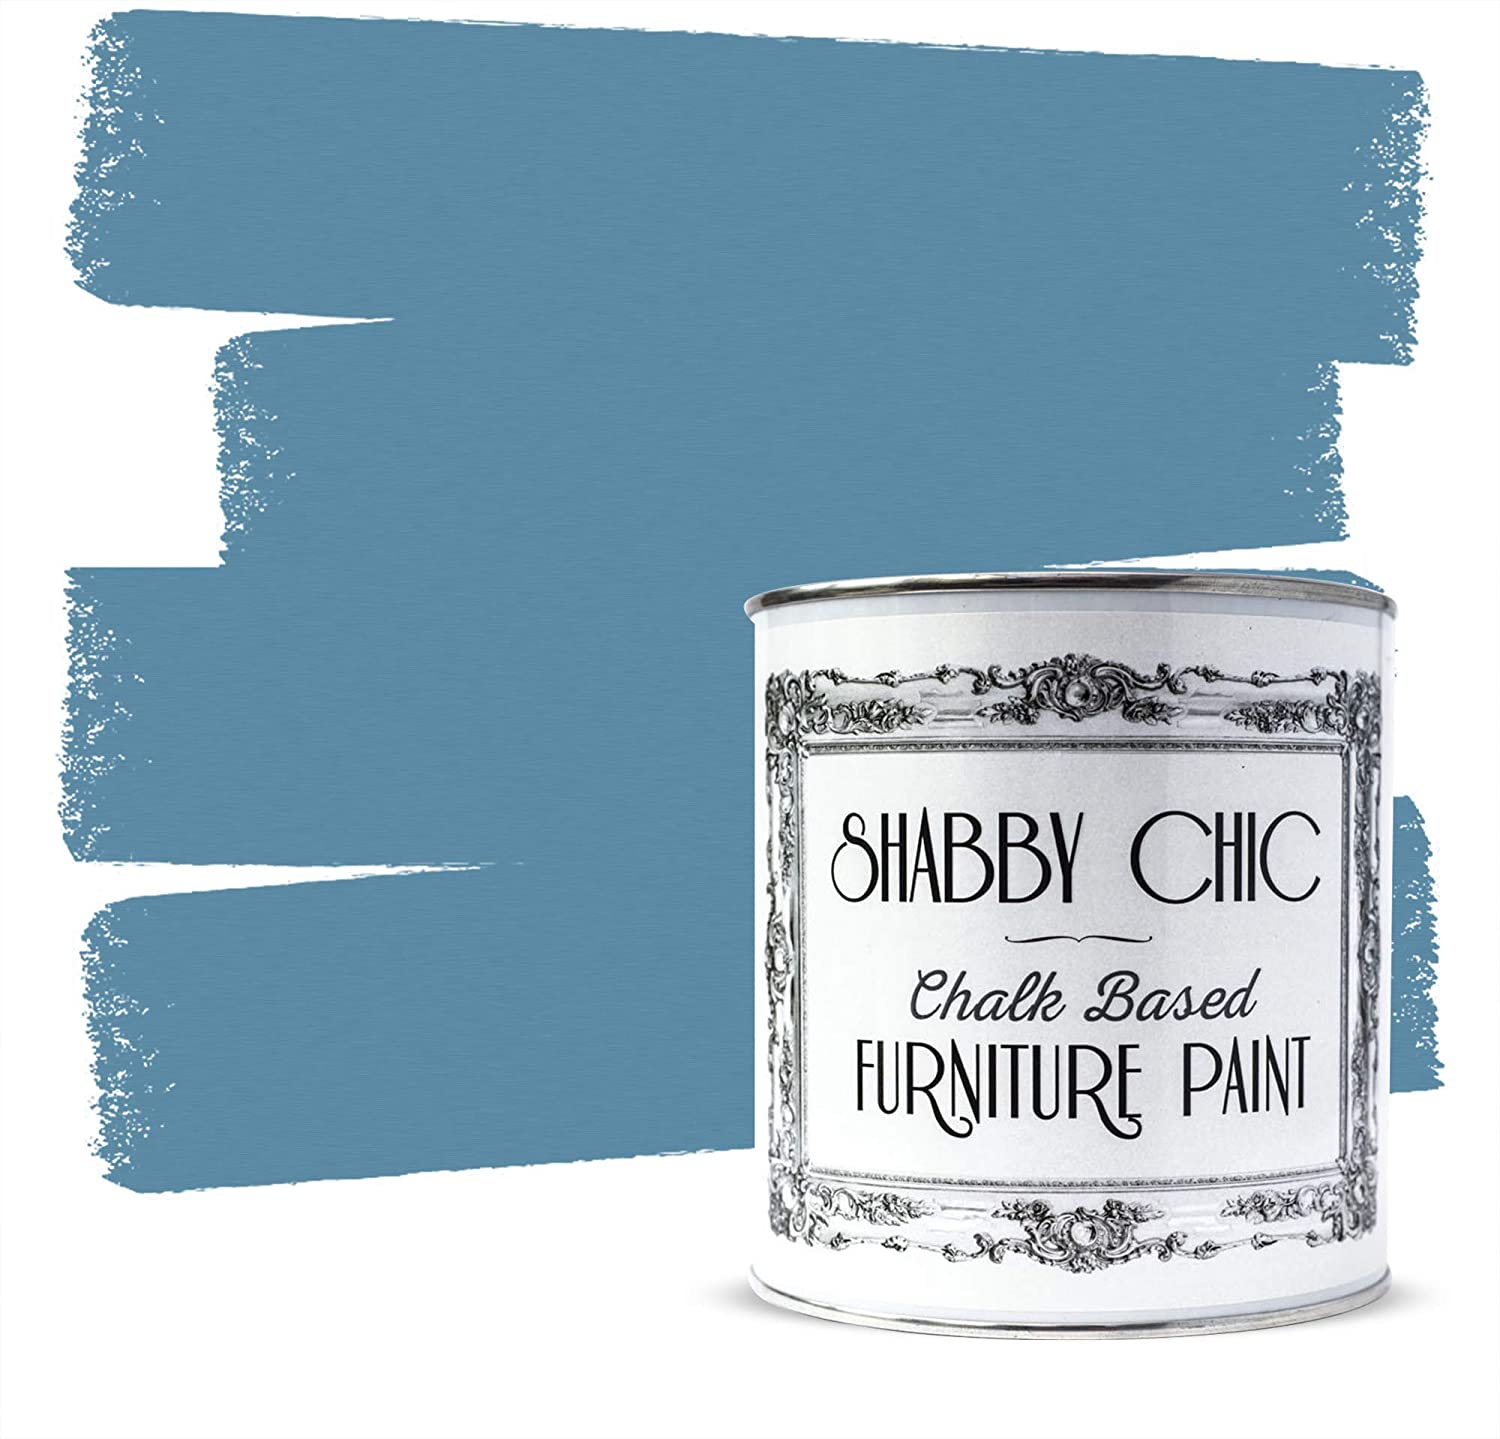 Shabby Chic Furniture Chalk Paint: Chalk Based Furniture and Craft Paint for Home Decor, DIY Projects, Wood Furniture - Chalked Interior Paints with Rustic Matte Finish - 250ml - Cottage Blue